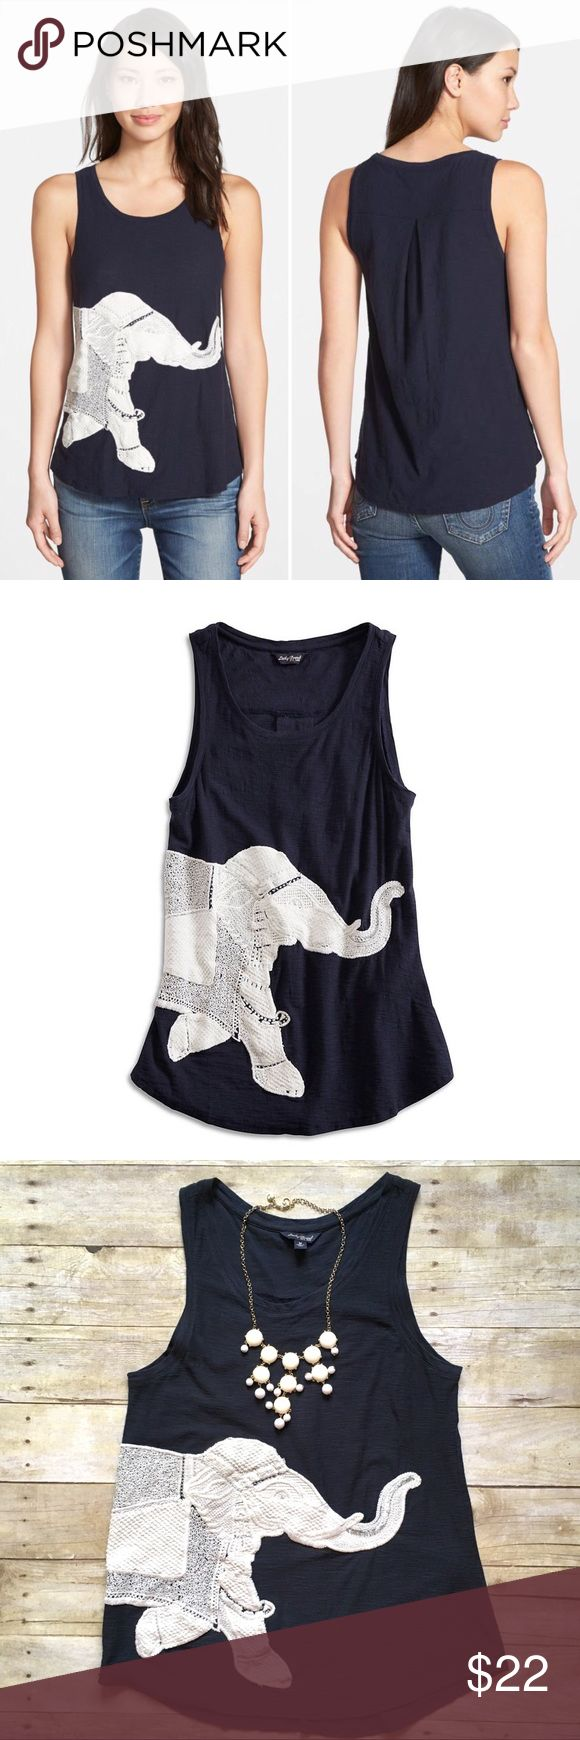 """NWOT Lucky Brand embroidered elephant tank Exotic-inspired tank top crafted from slubbed cotton. Features a scoop neckline, hi-lo curved hem and embroidered elephant graphic. Never worn! Pleated back. 100% cotton. 27""""L.  18"""" bust laying flat. Size medium.    {Location B5} Lucky Brand Tops Tank Tops"""